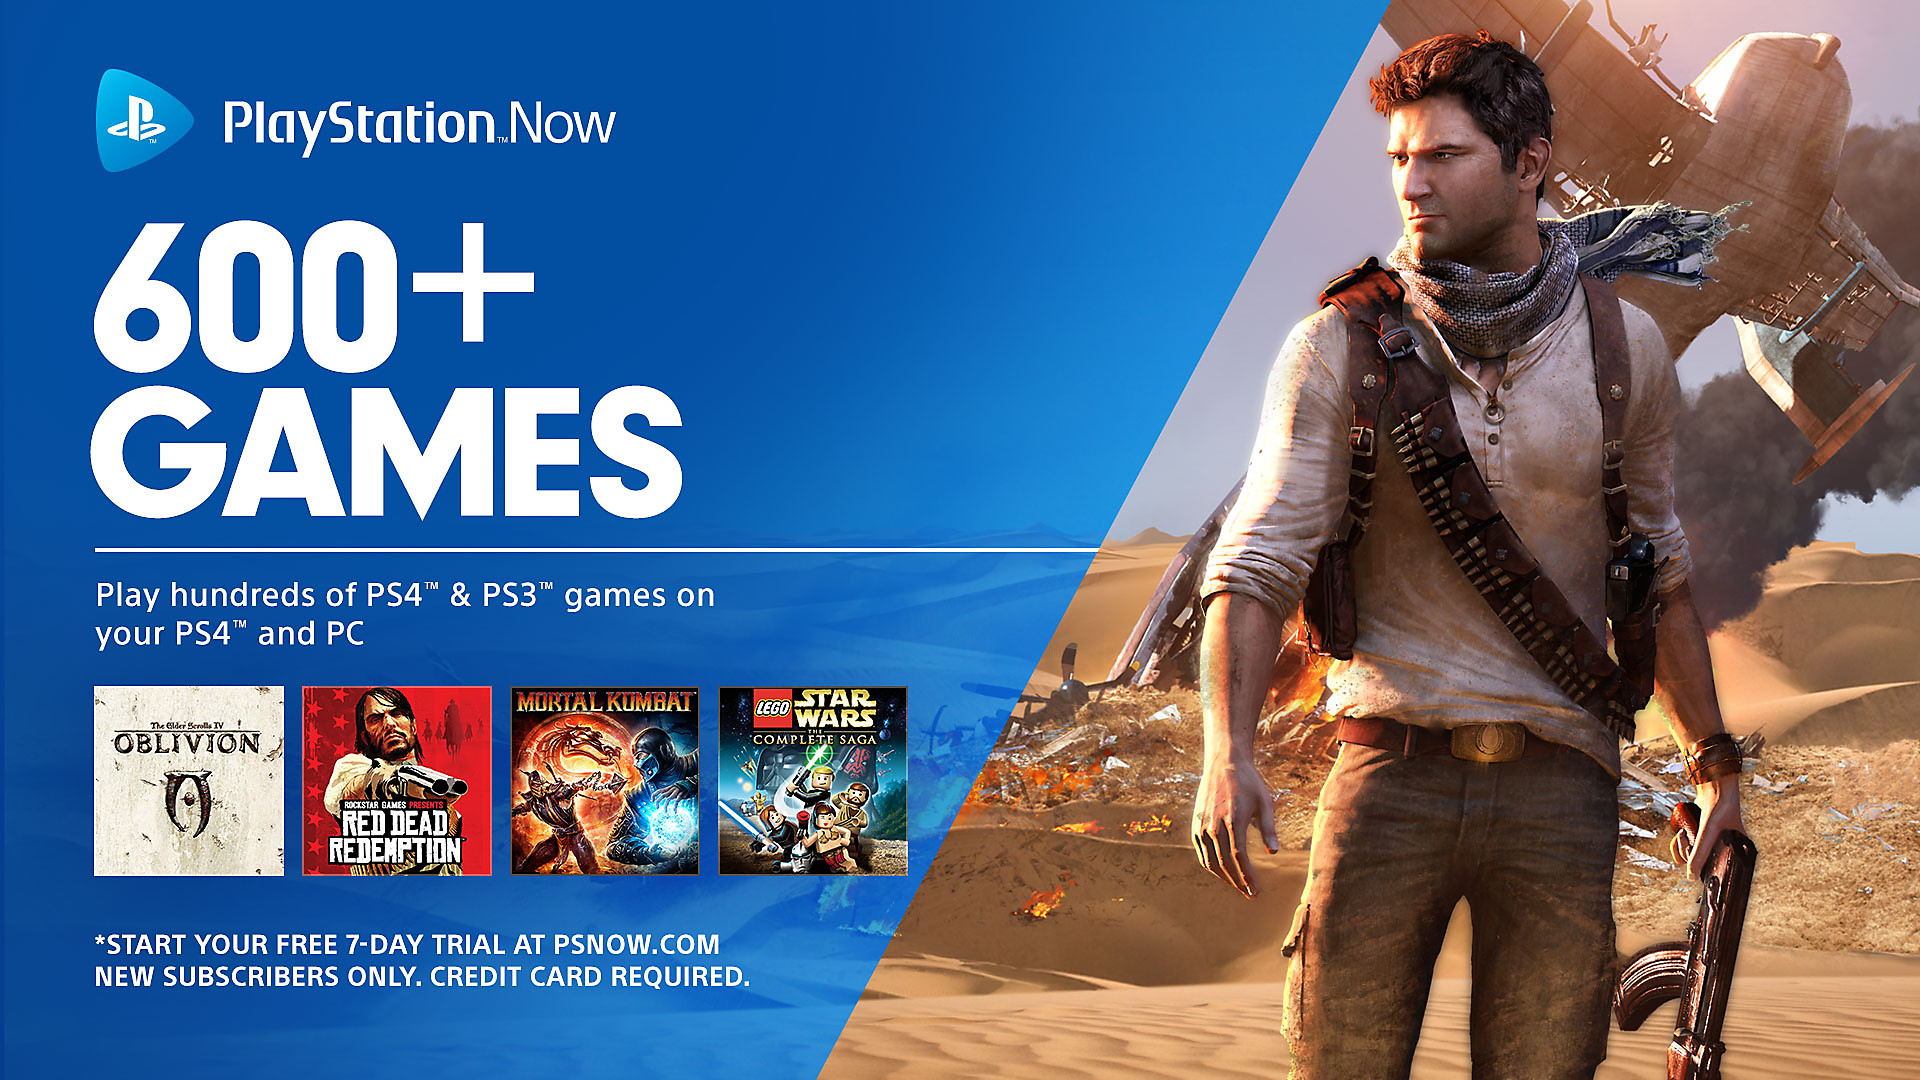 PlayStation Now - Over 600+ Games